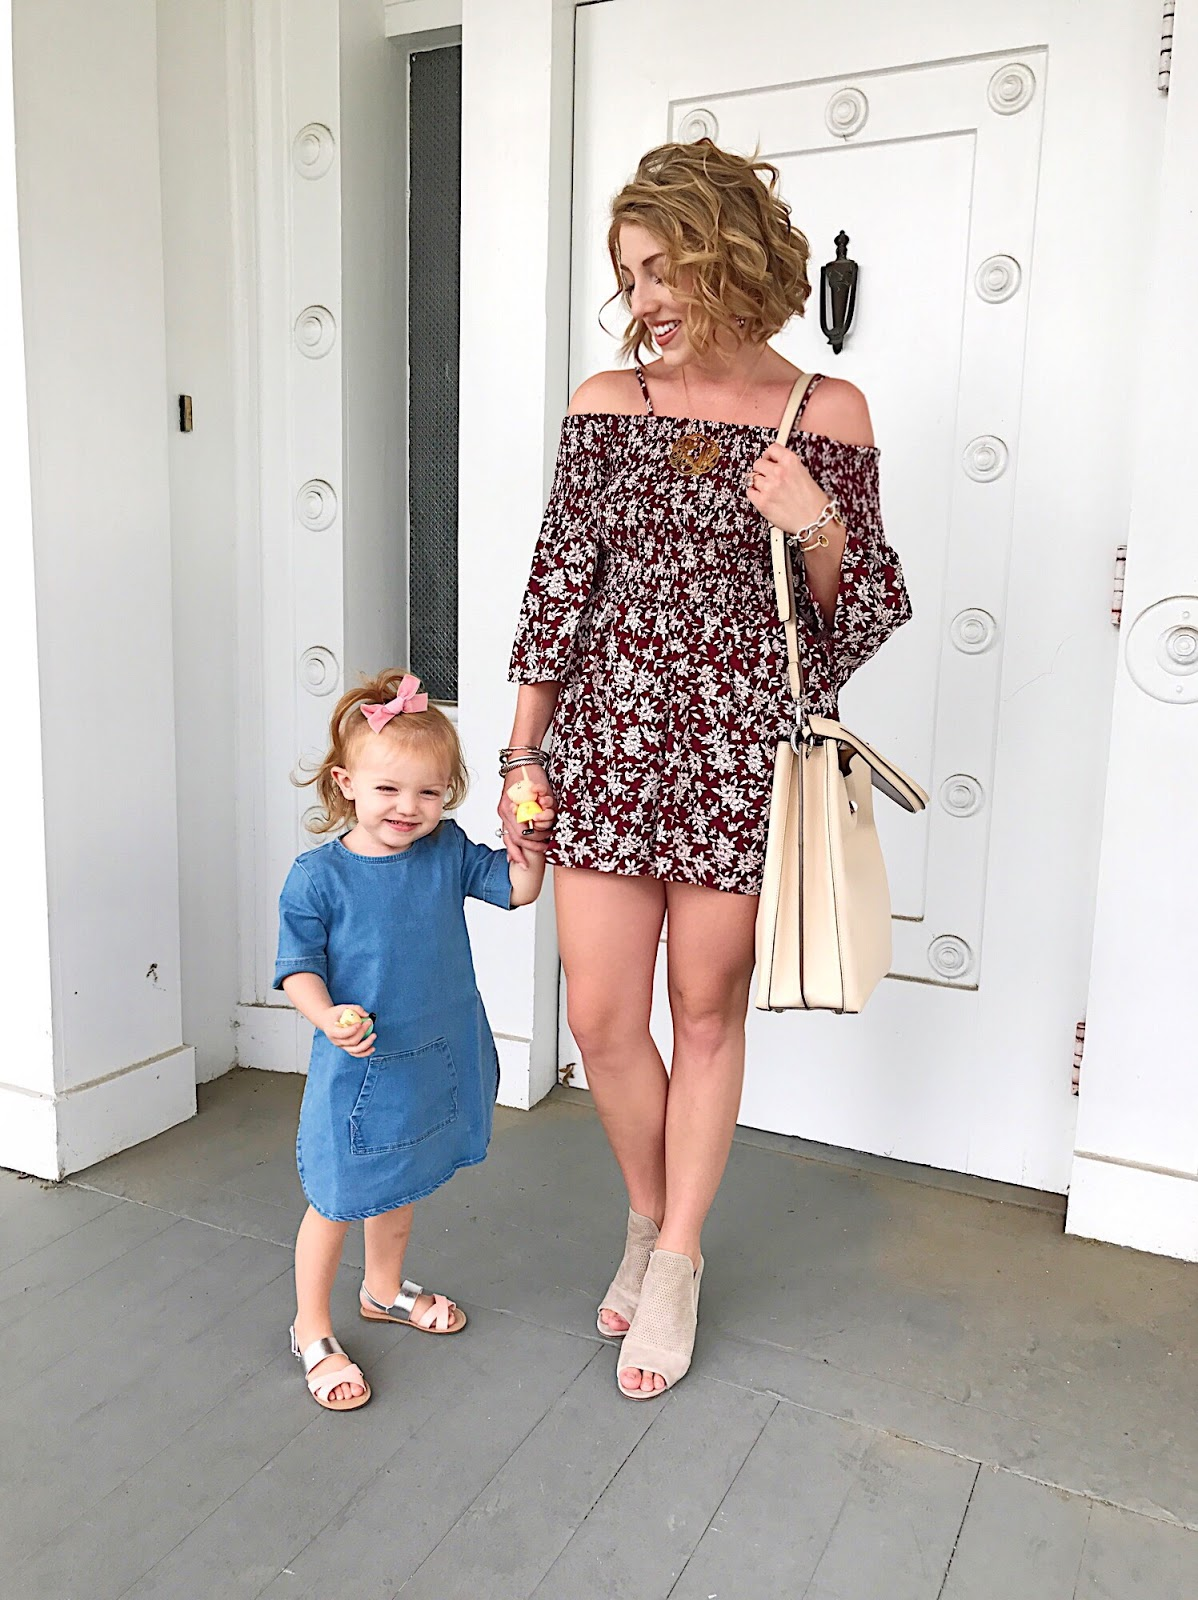 Mommy & Me Outfits - Click through to see more on Something Delightful Blog.